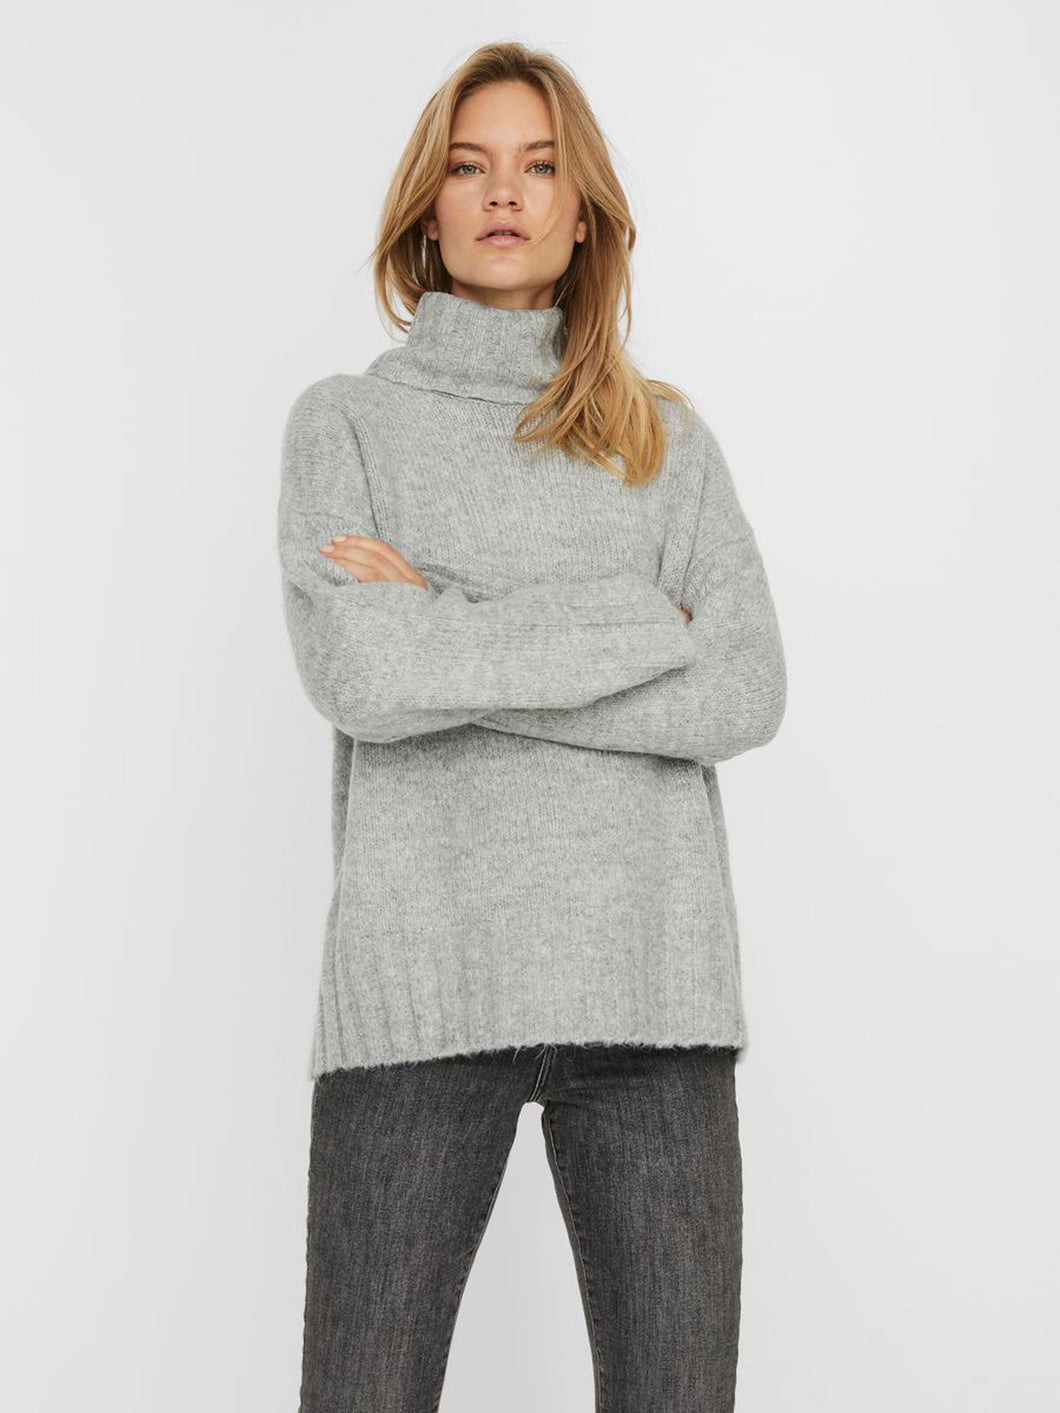 BERKO TURTLE NECK KNIT / LIGHT GREY